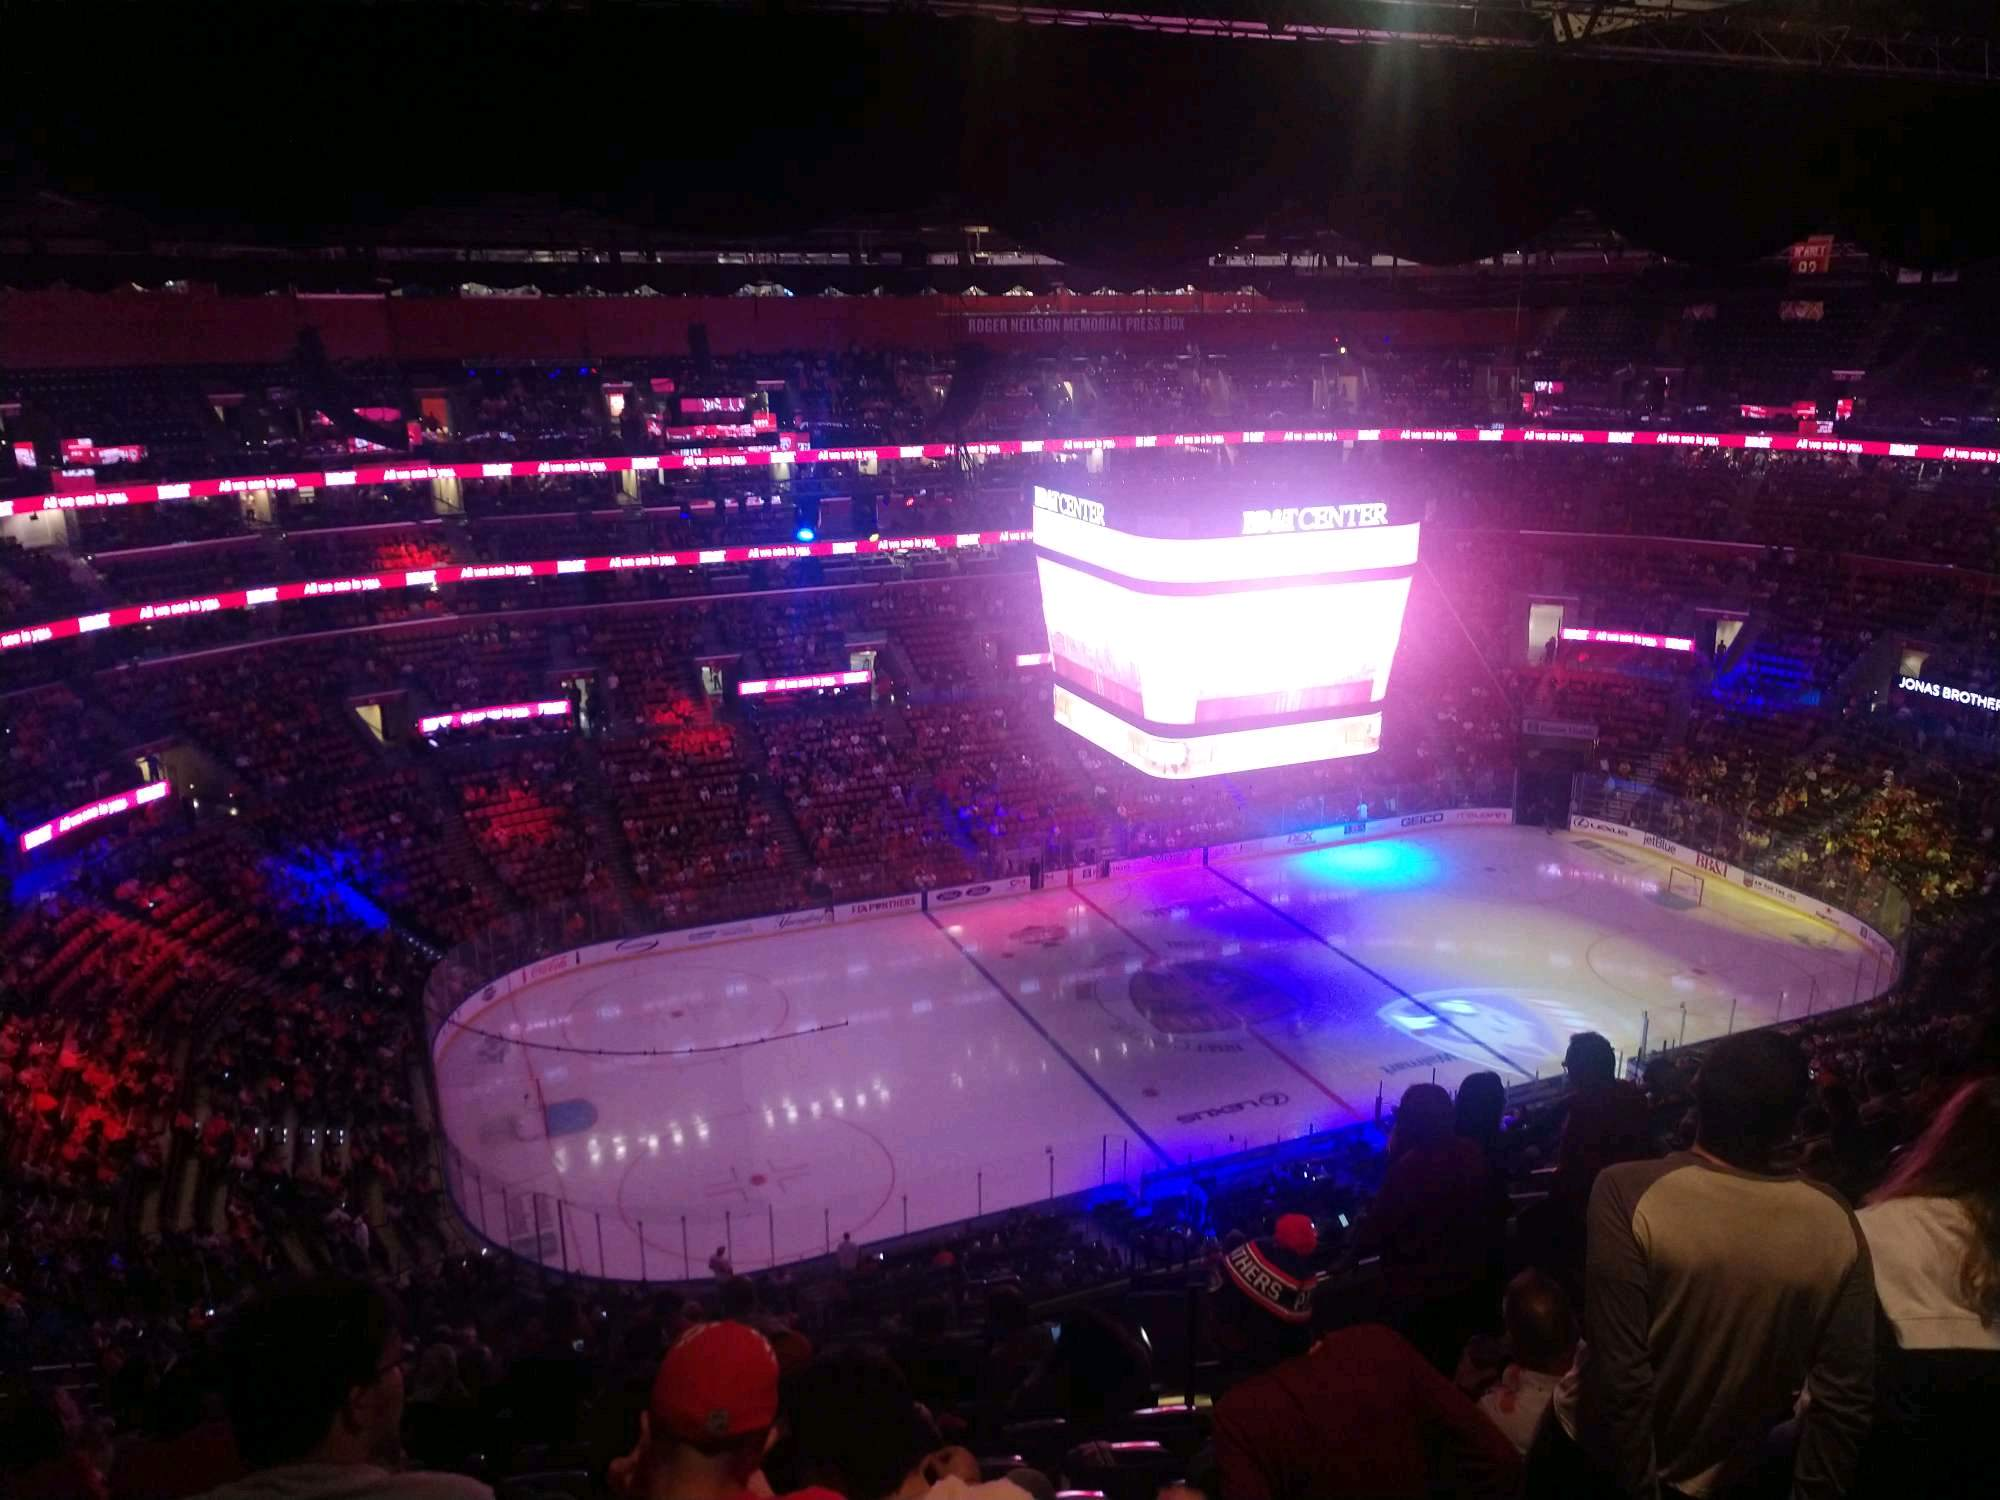 BB&T Center Section 304 Row 14 Seat 8